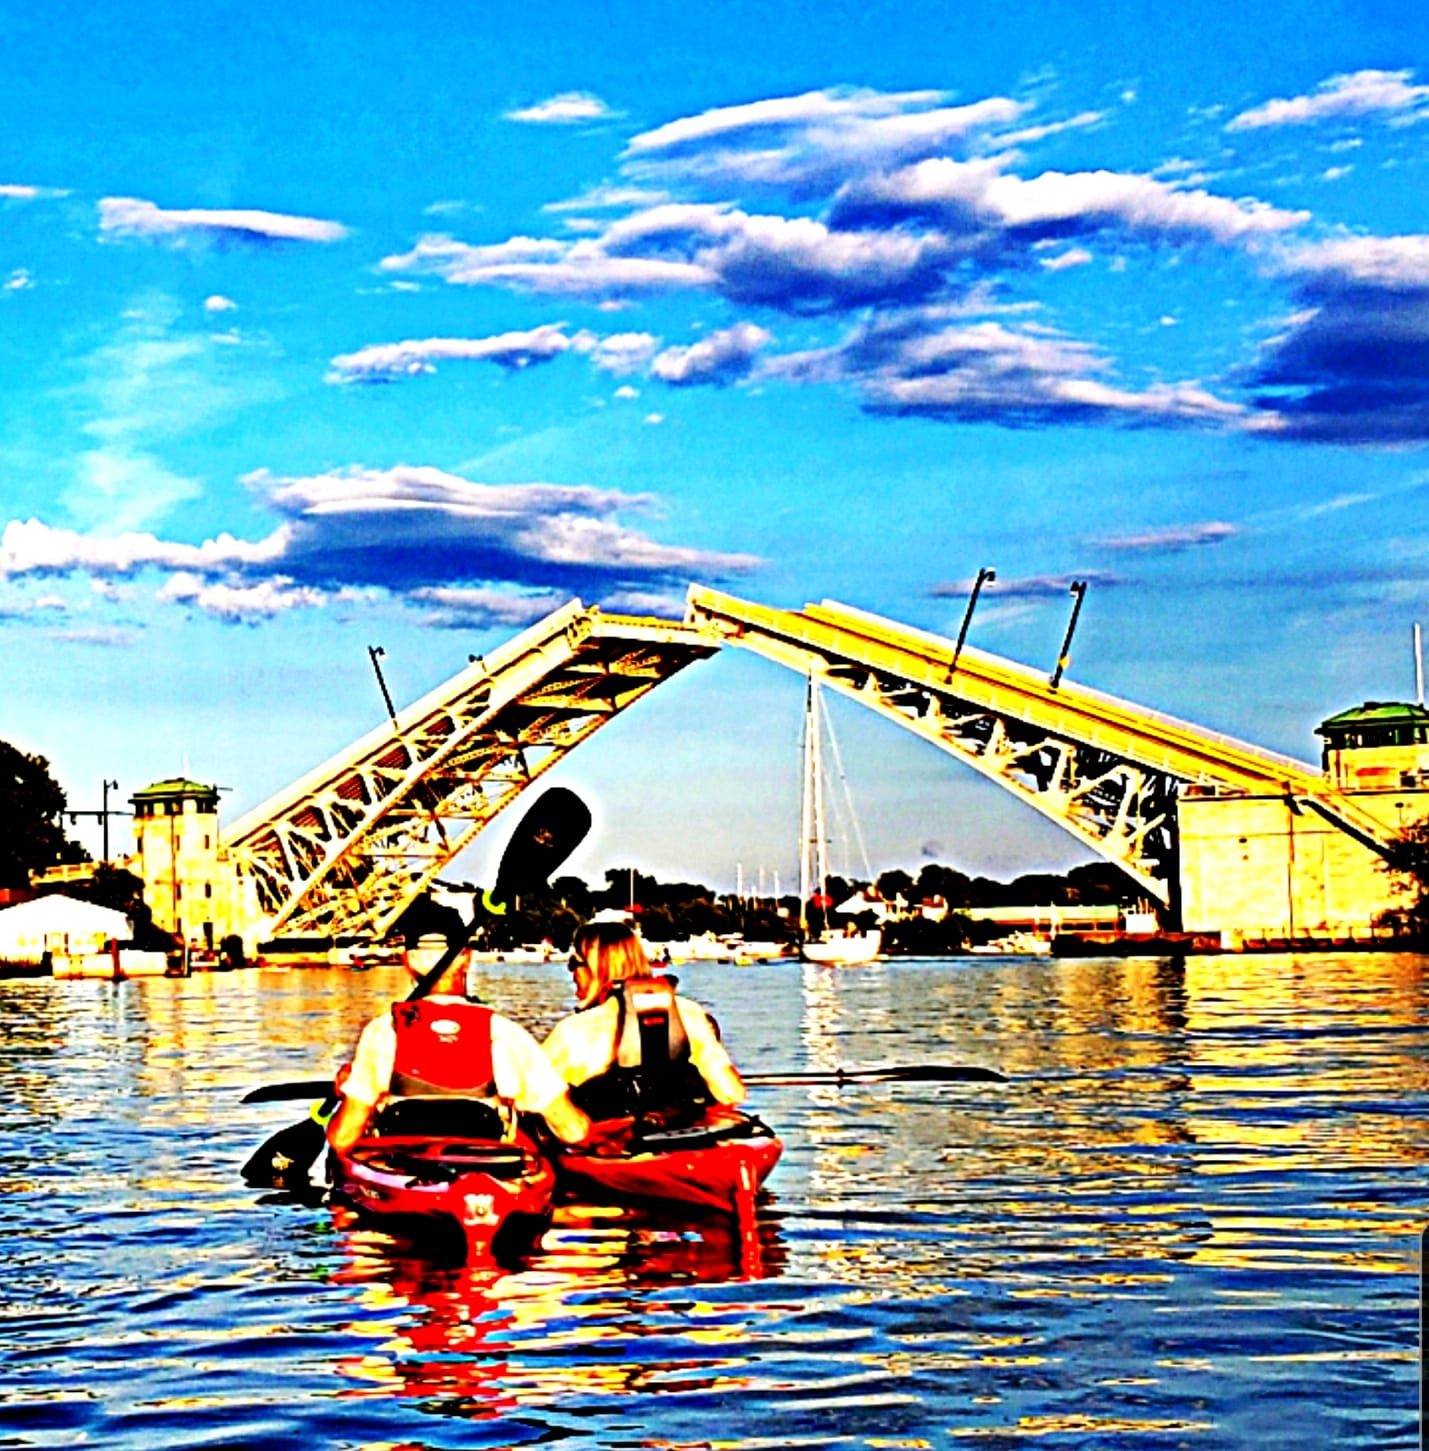 Heavily edited image of 2 kayakers in the river in front of a partially open drawbridge